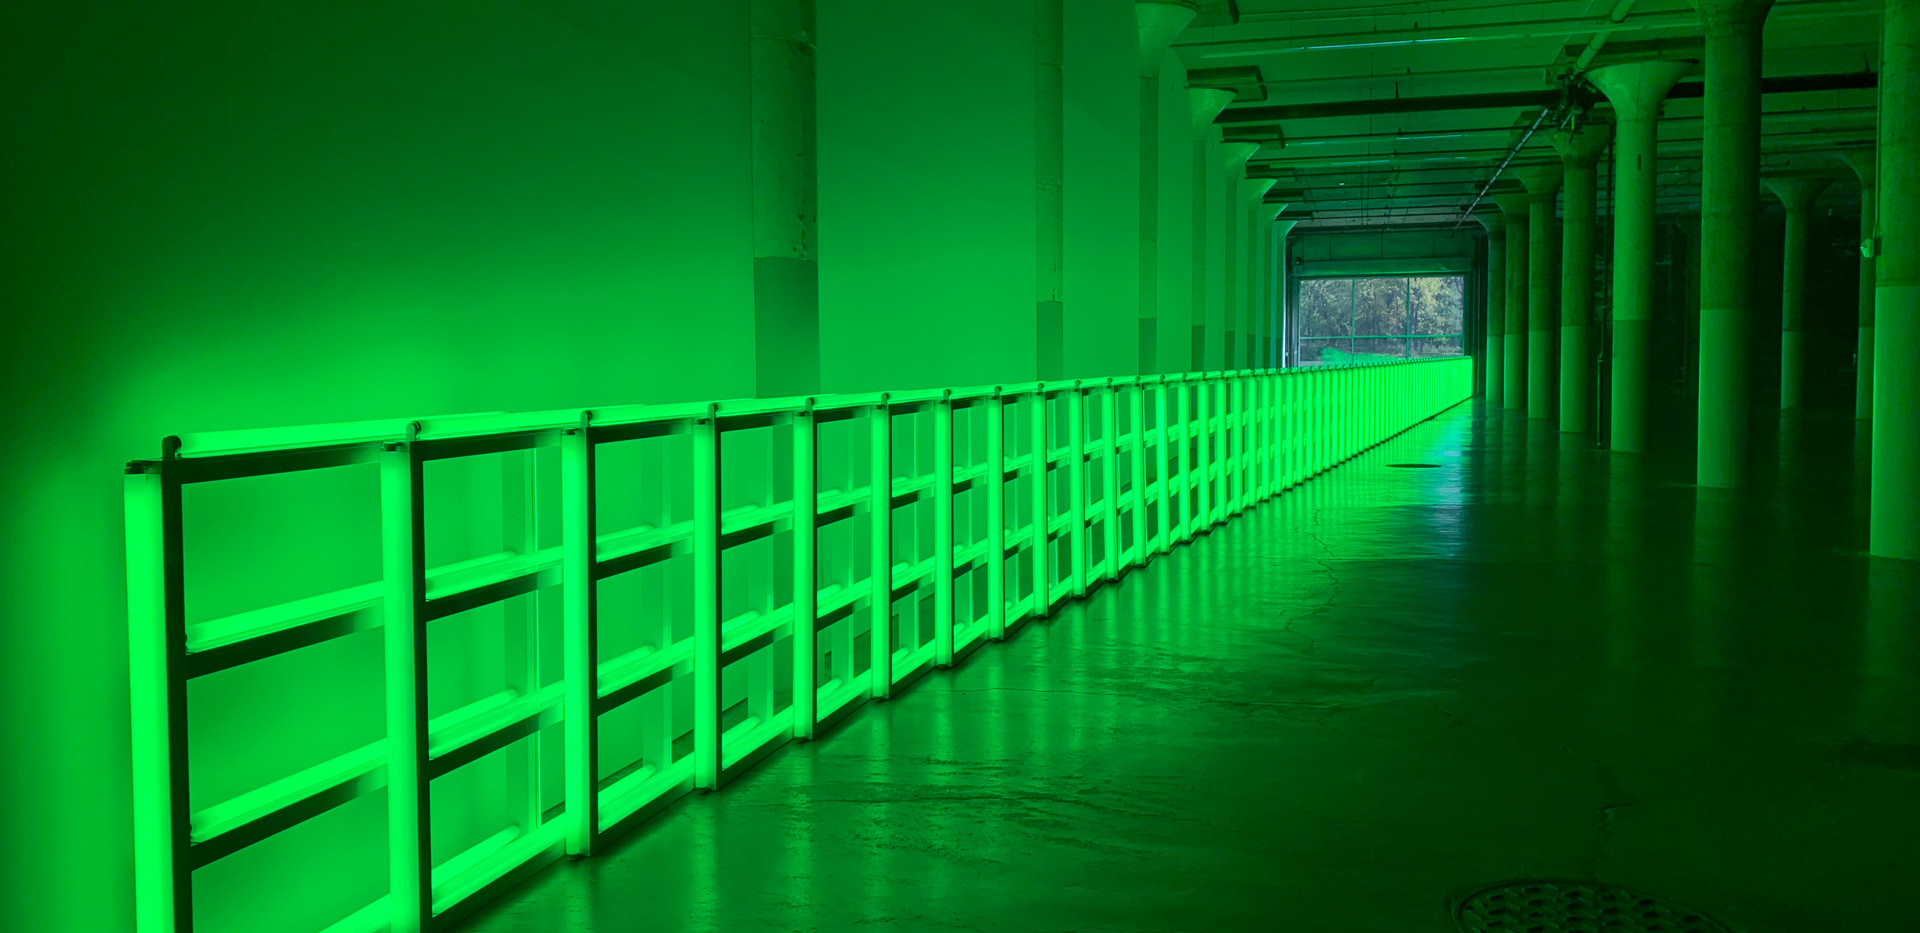 Dan Flavin, untitled (to you, Heiner, with admiration and affection), 1973